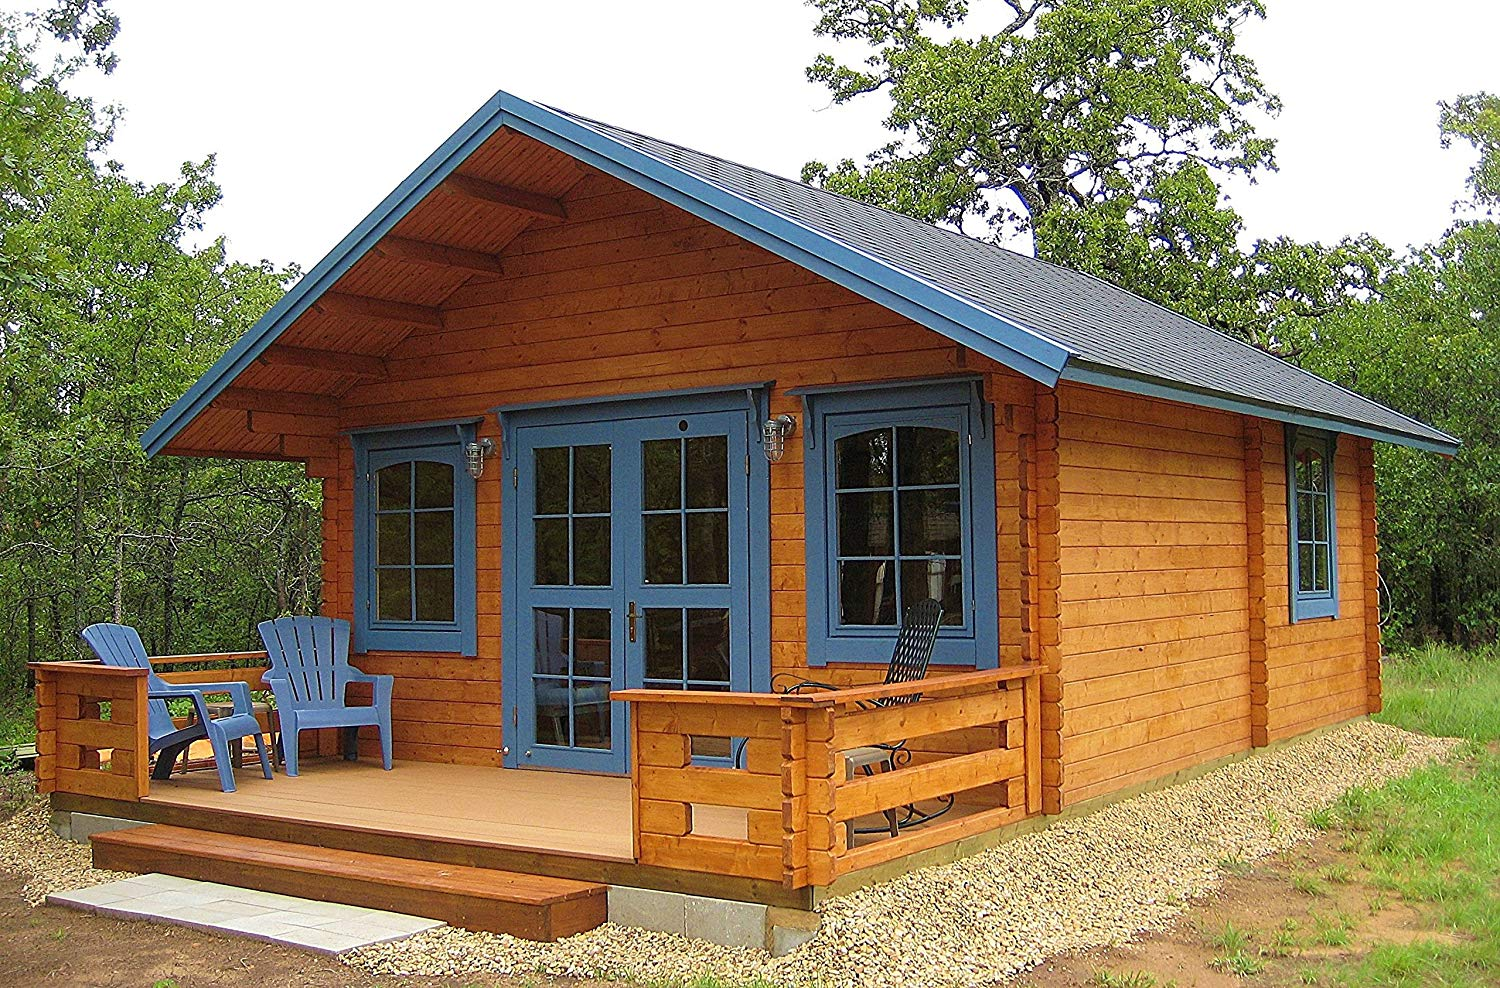 Amazon Tiny Houses: How to Buy a Home or Cabin on Amazon.